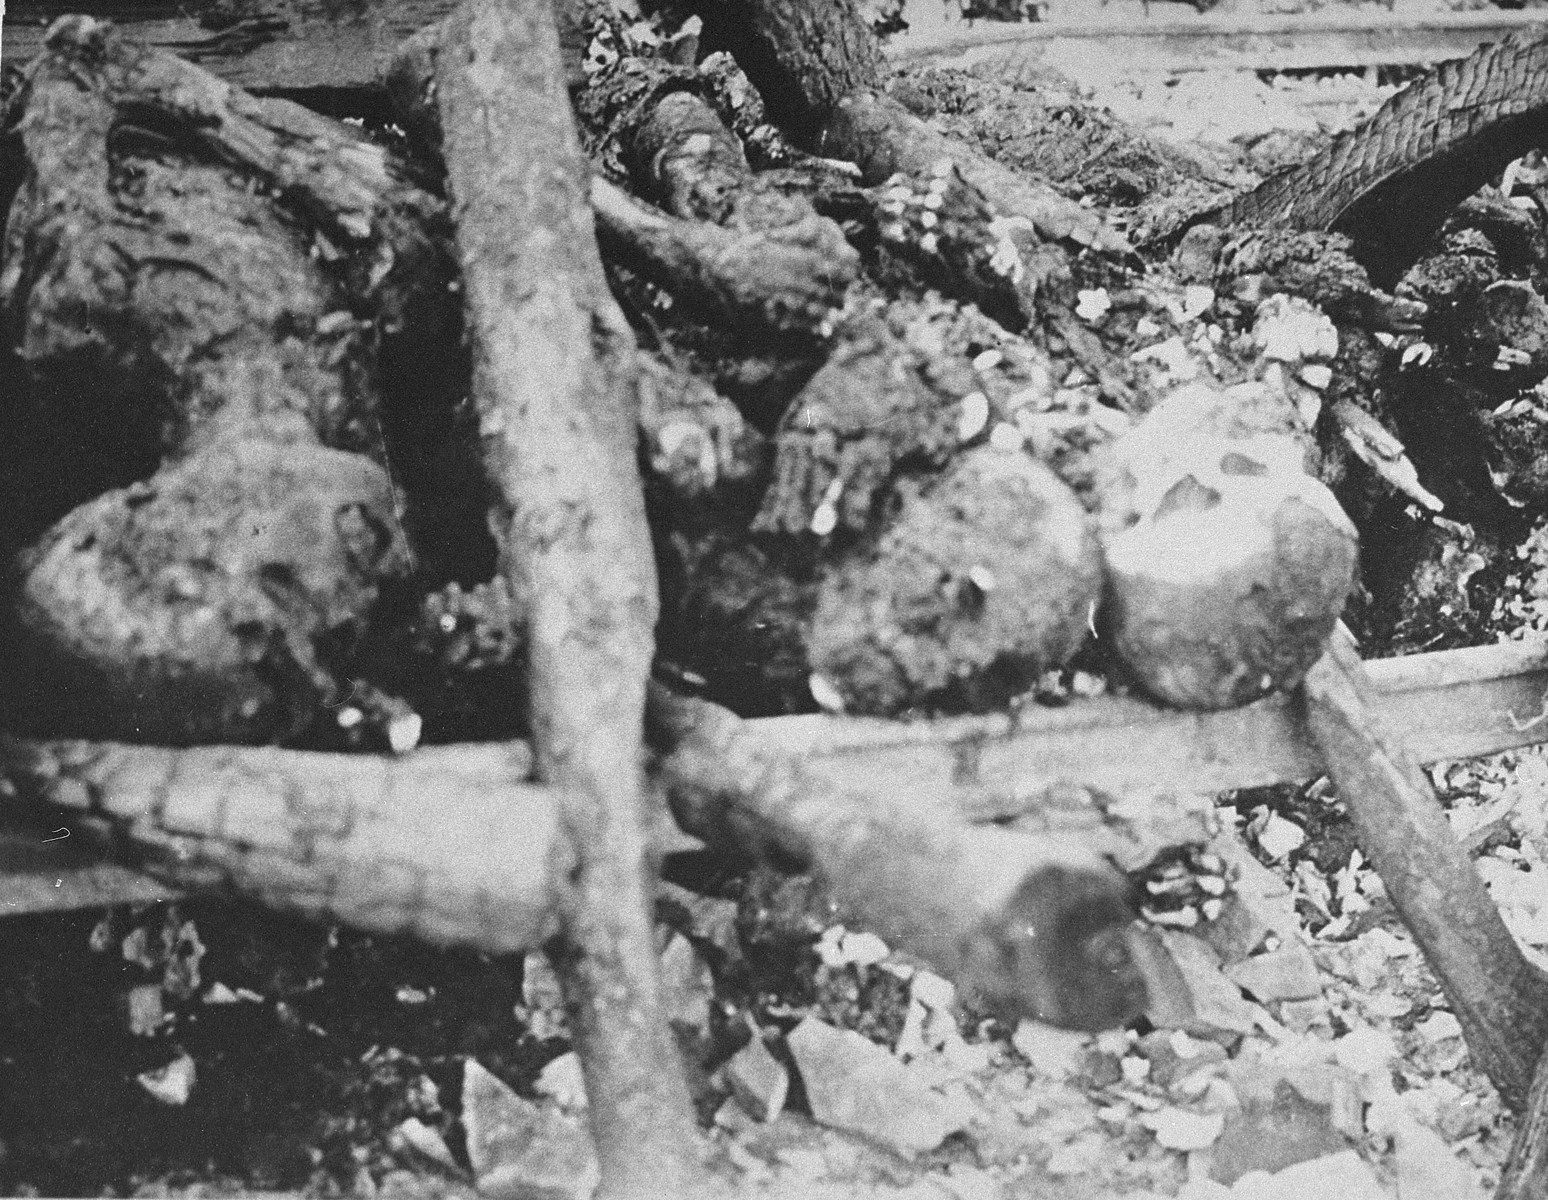 The charred remains of prisoners burned by the SS prior to the evacuation of Ohrdruf.